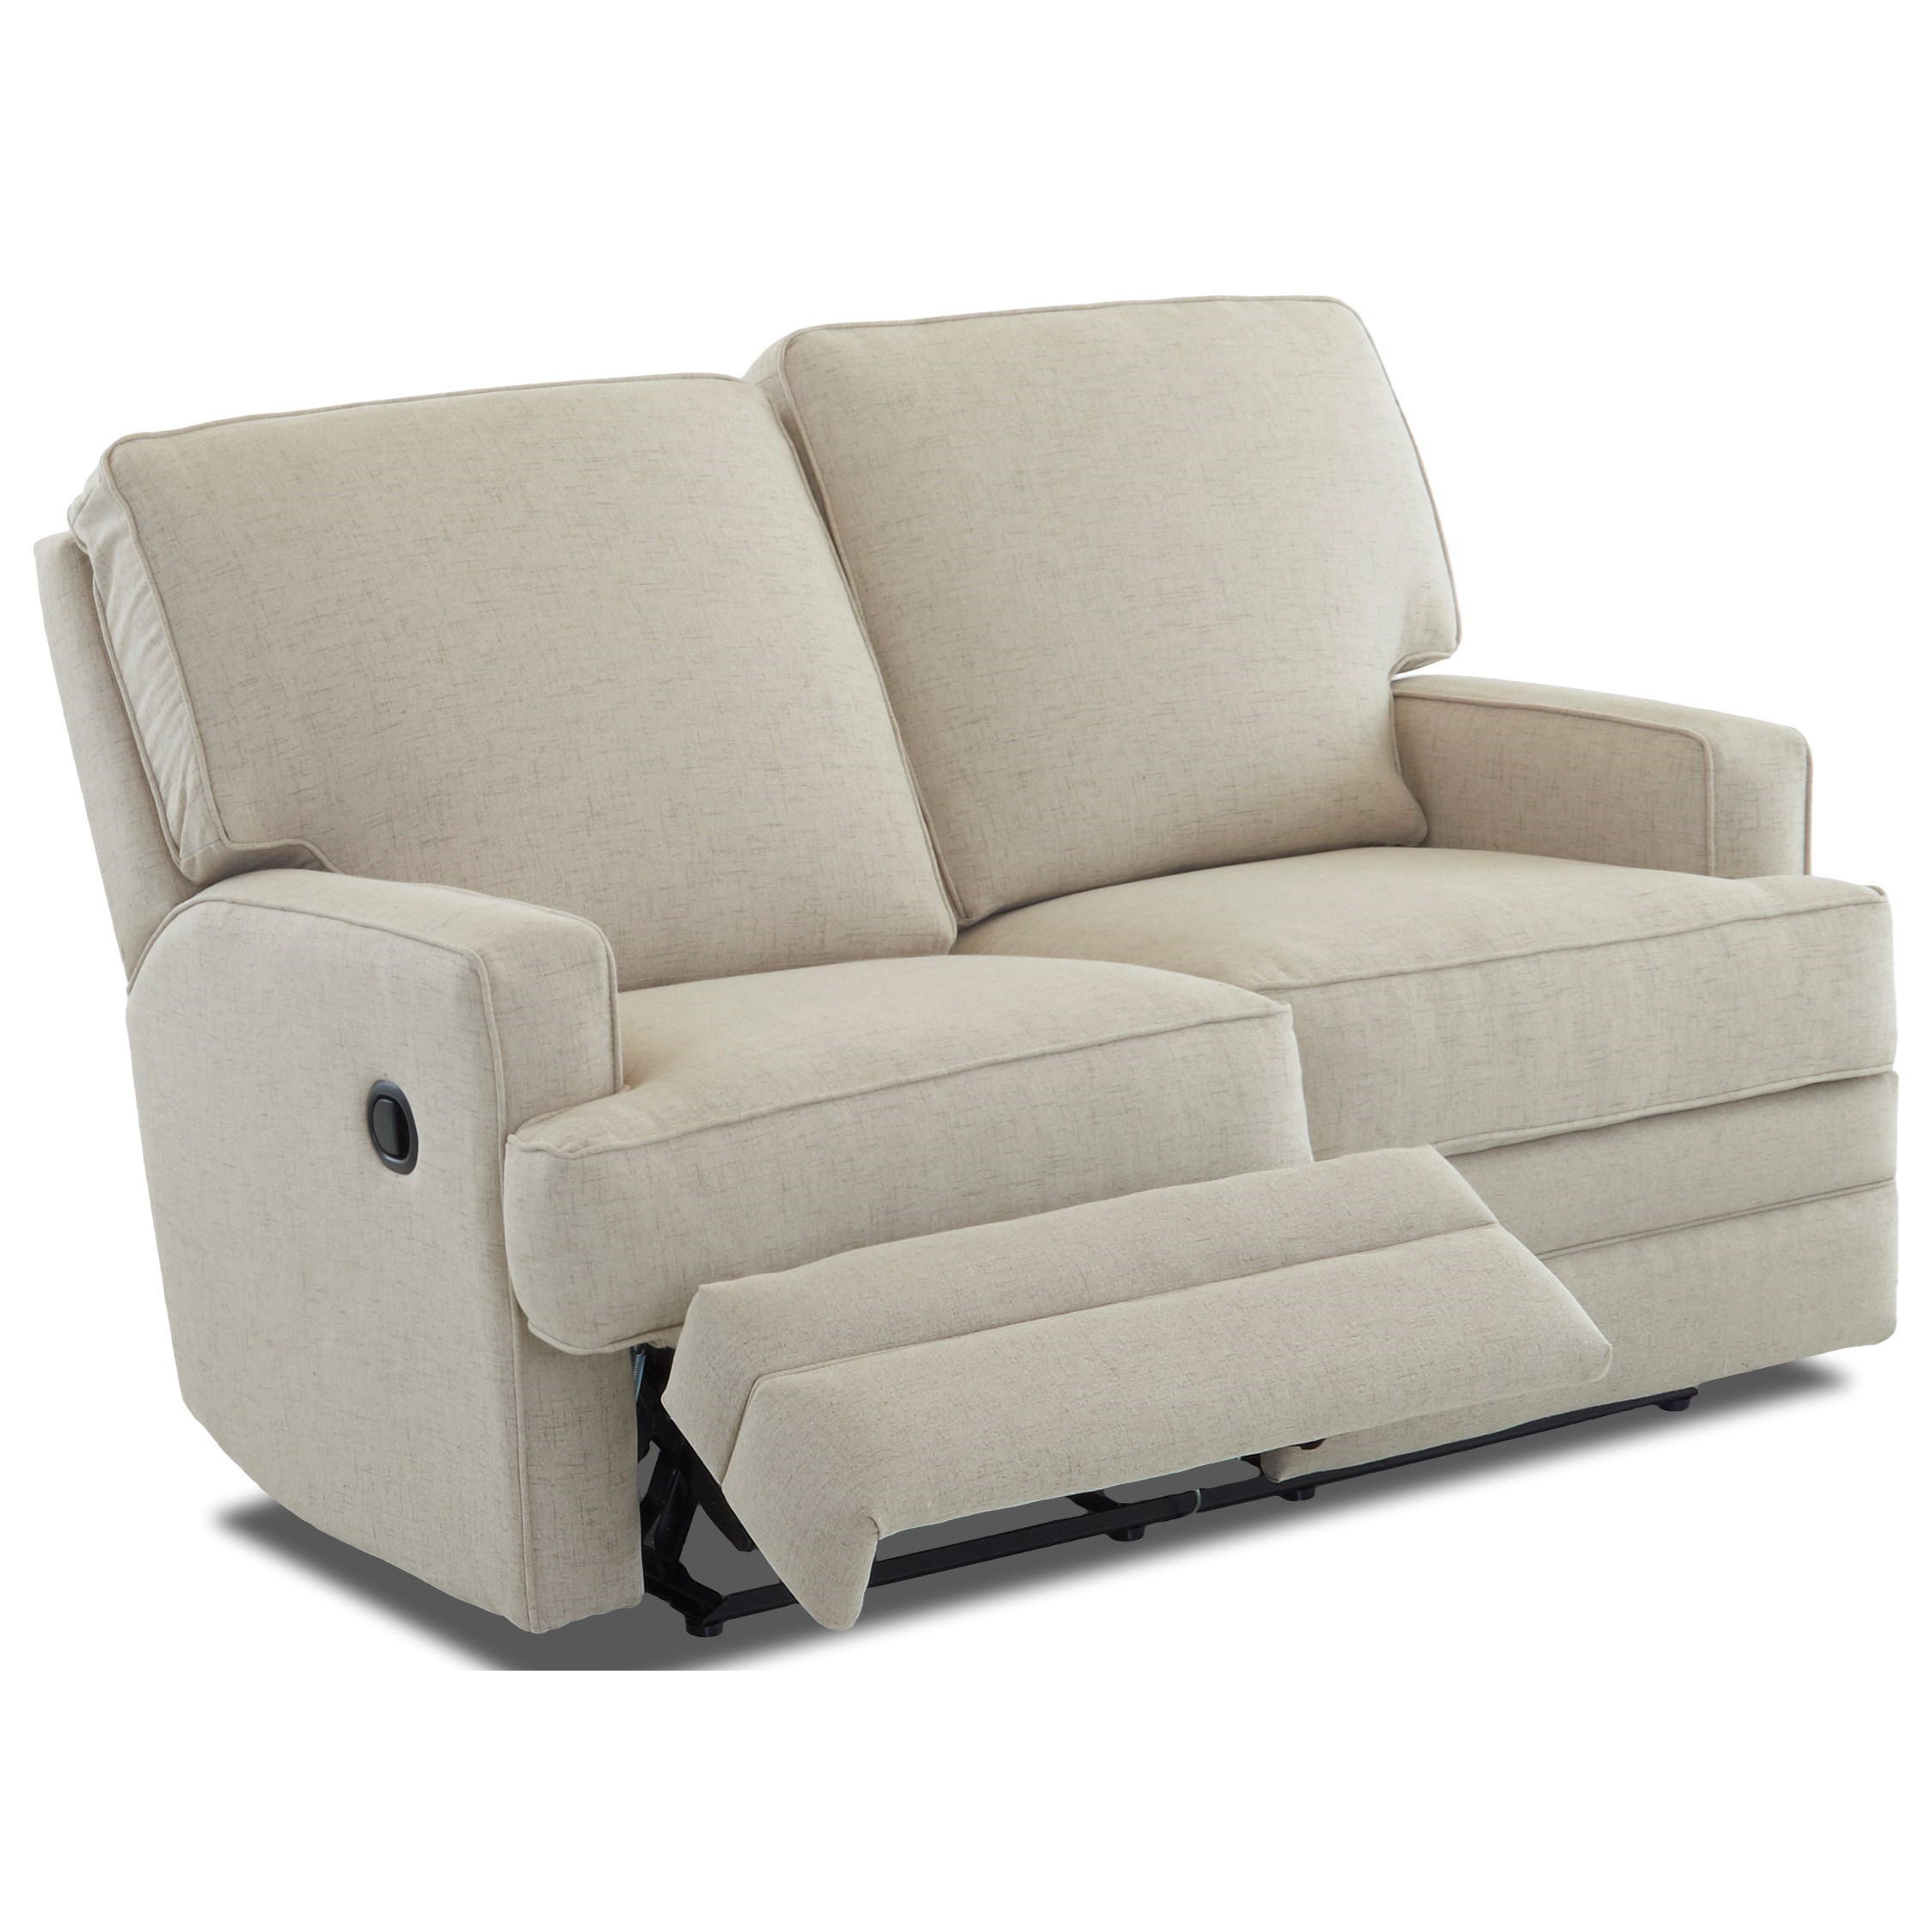 Casual Power Reclining Loveseat By Klaussner Wolf And Gardiner Wolf Furniture